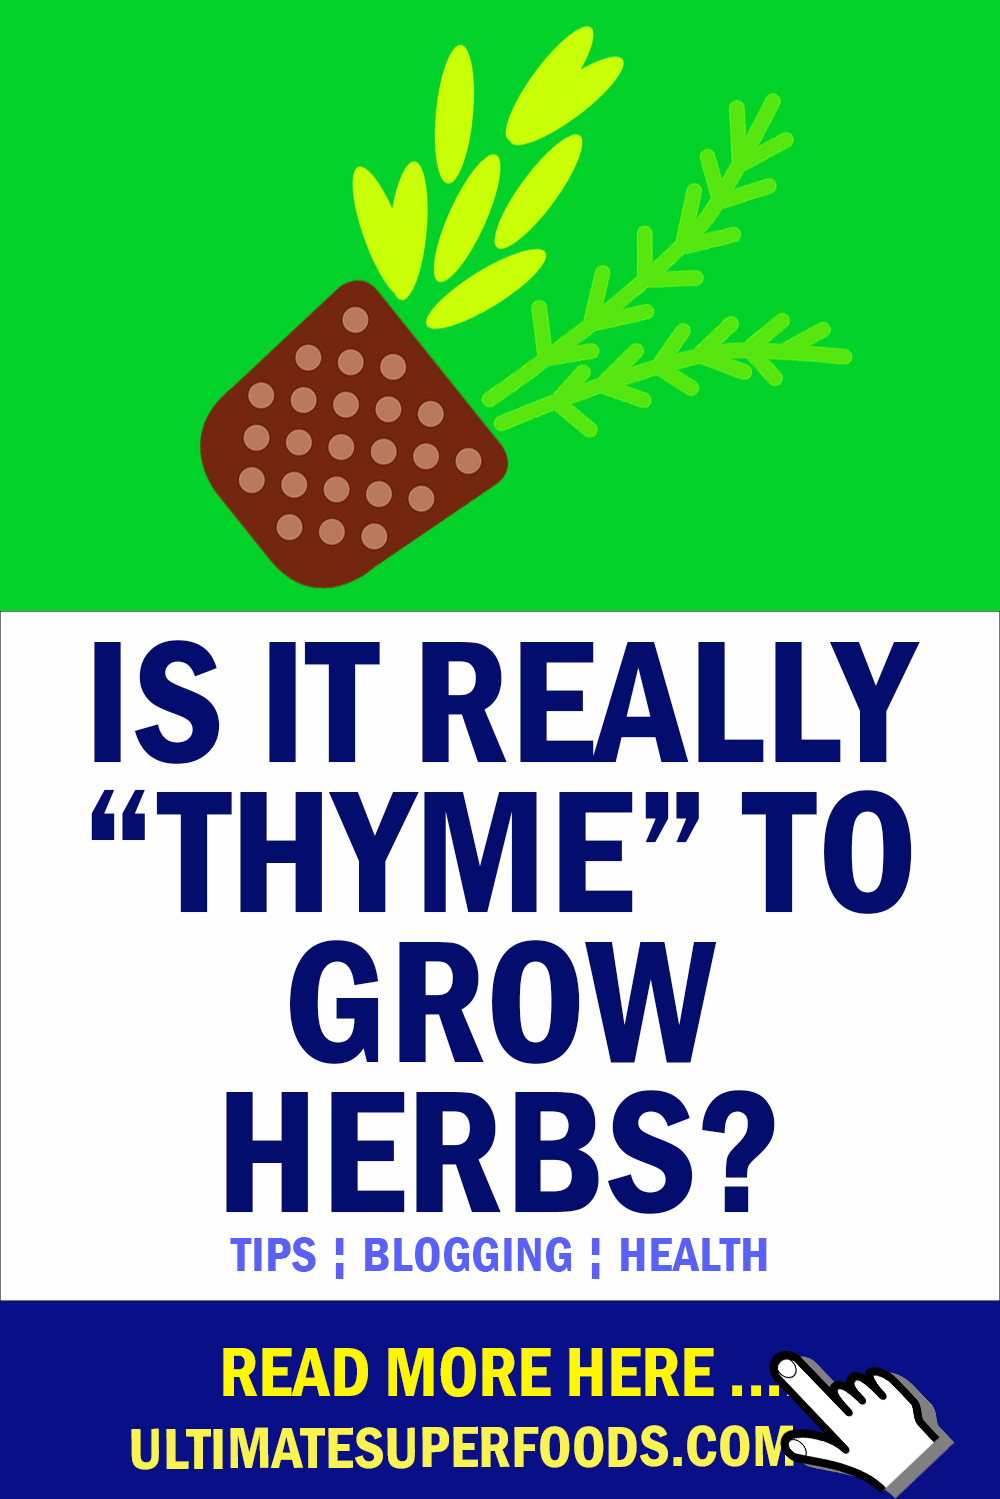 Time-To-Grow-Herbs